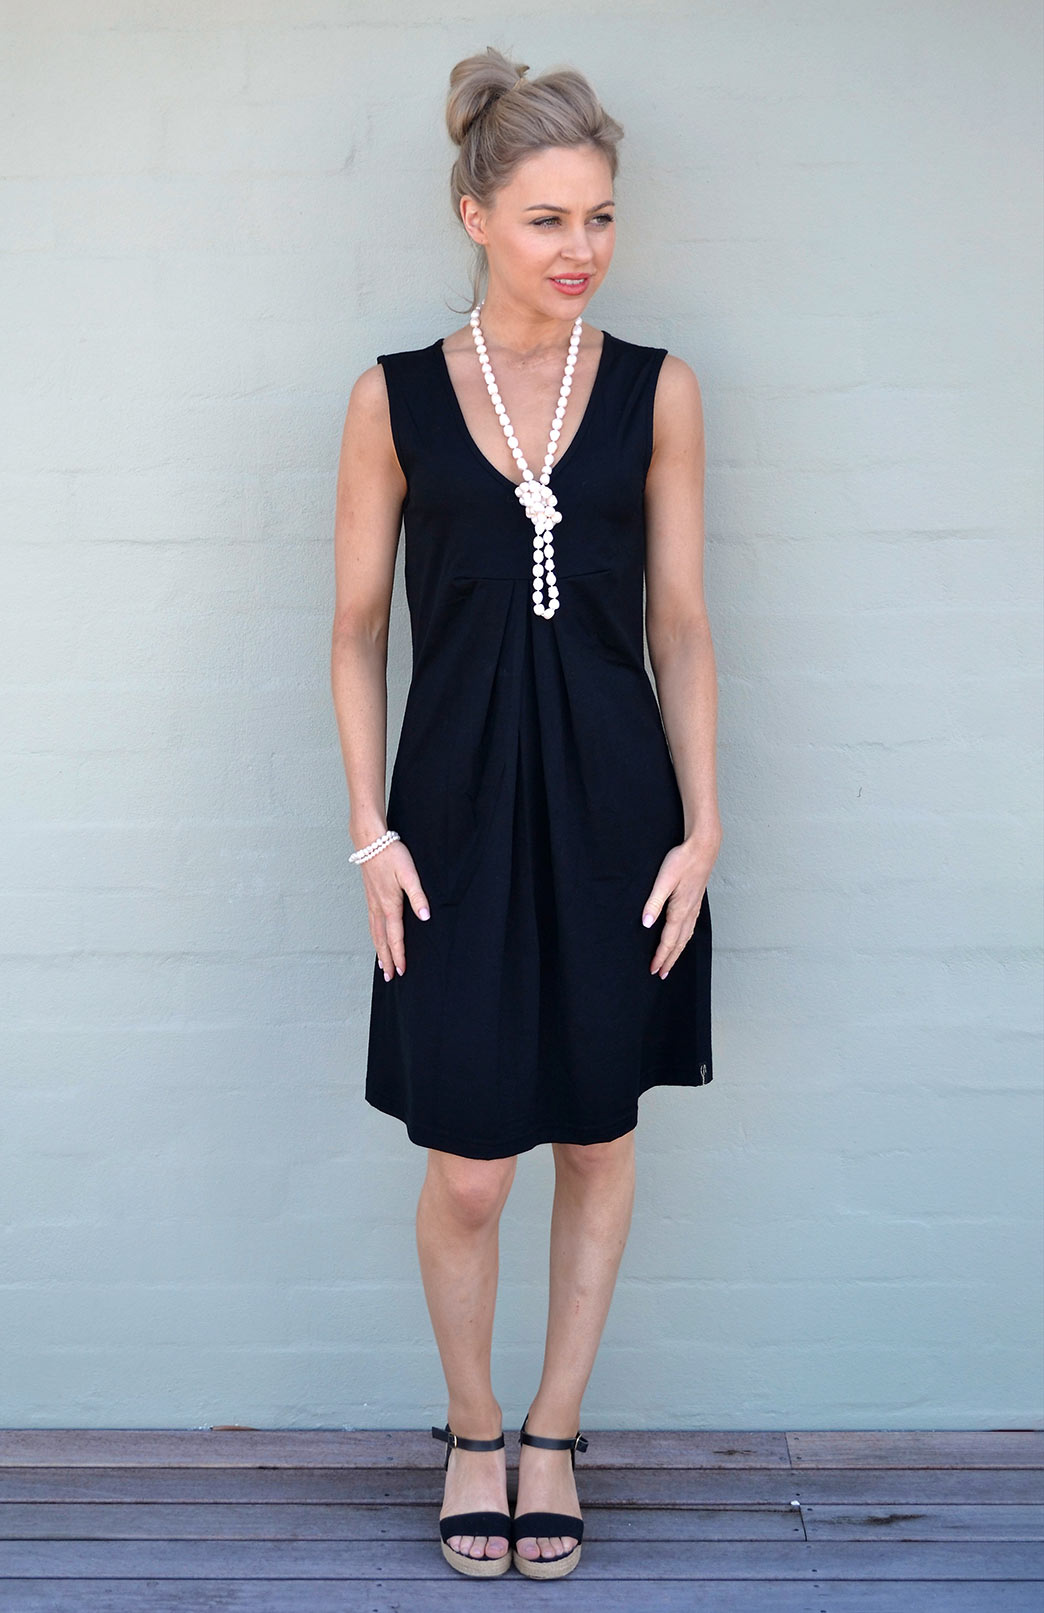 V-Front Dress - Women's Merino Wool Black V-Neck Dress with Front Pleats - Smitten Merino Tasmania Australia